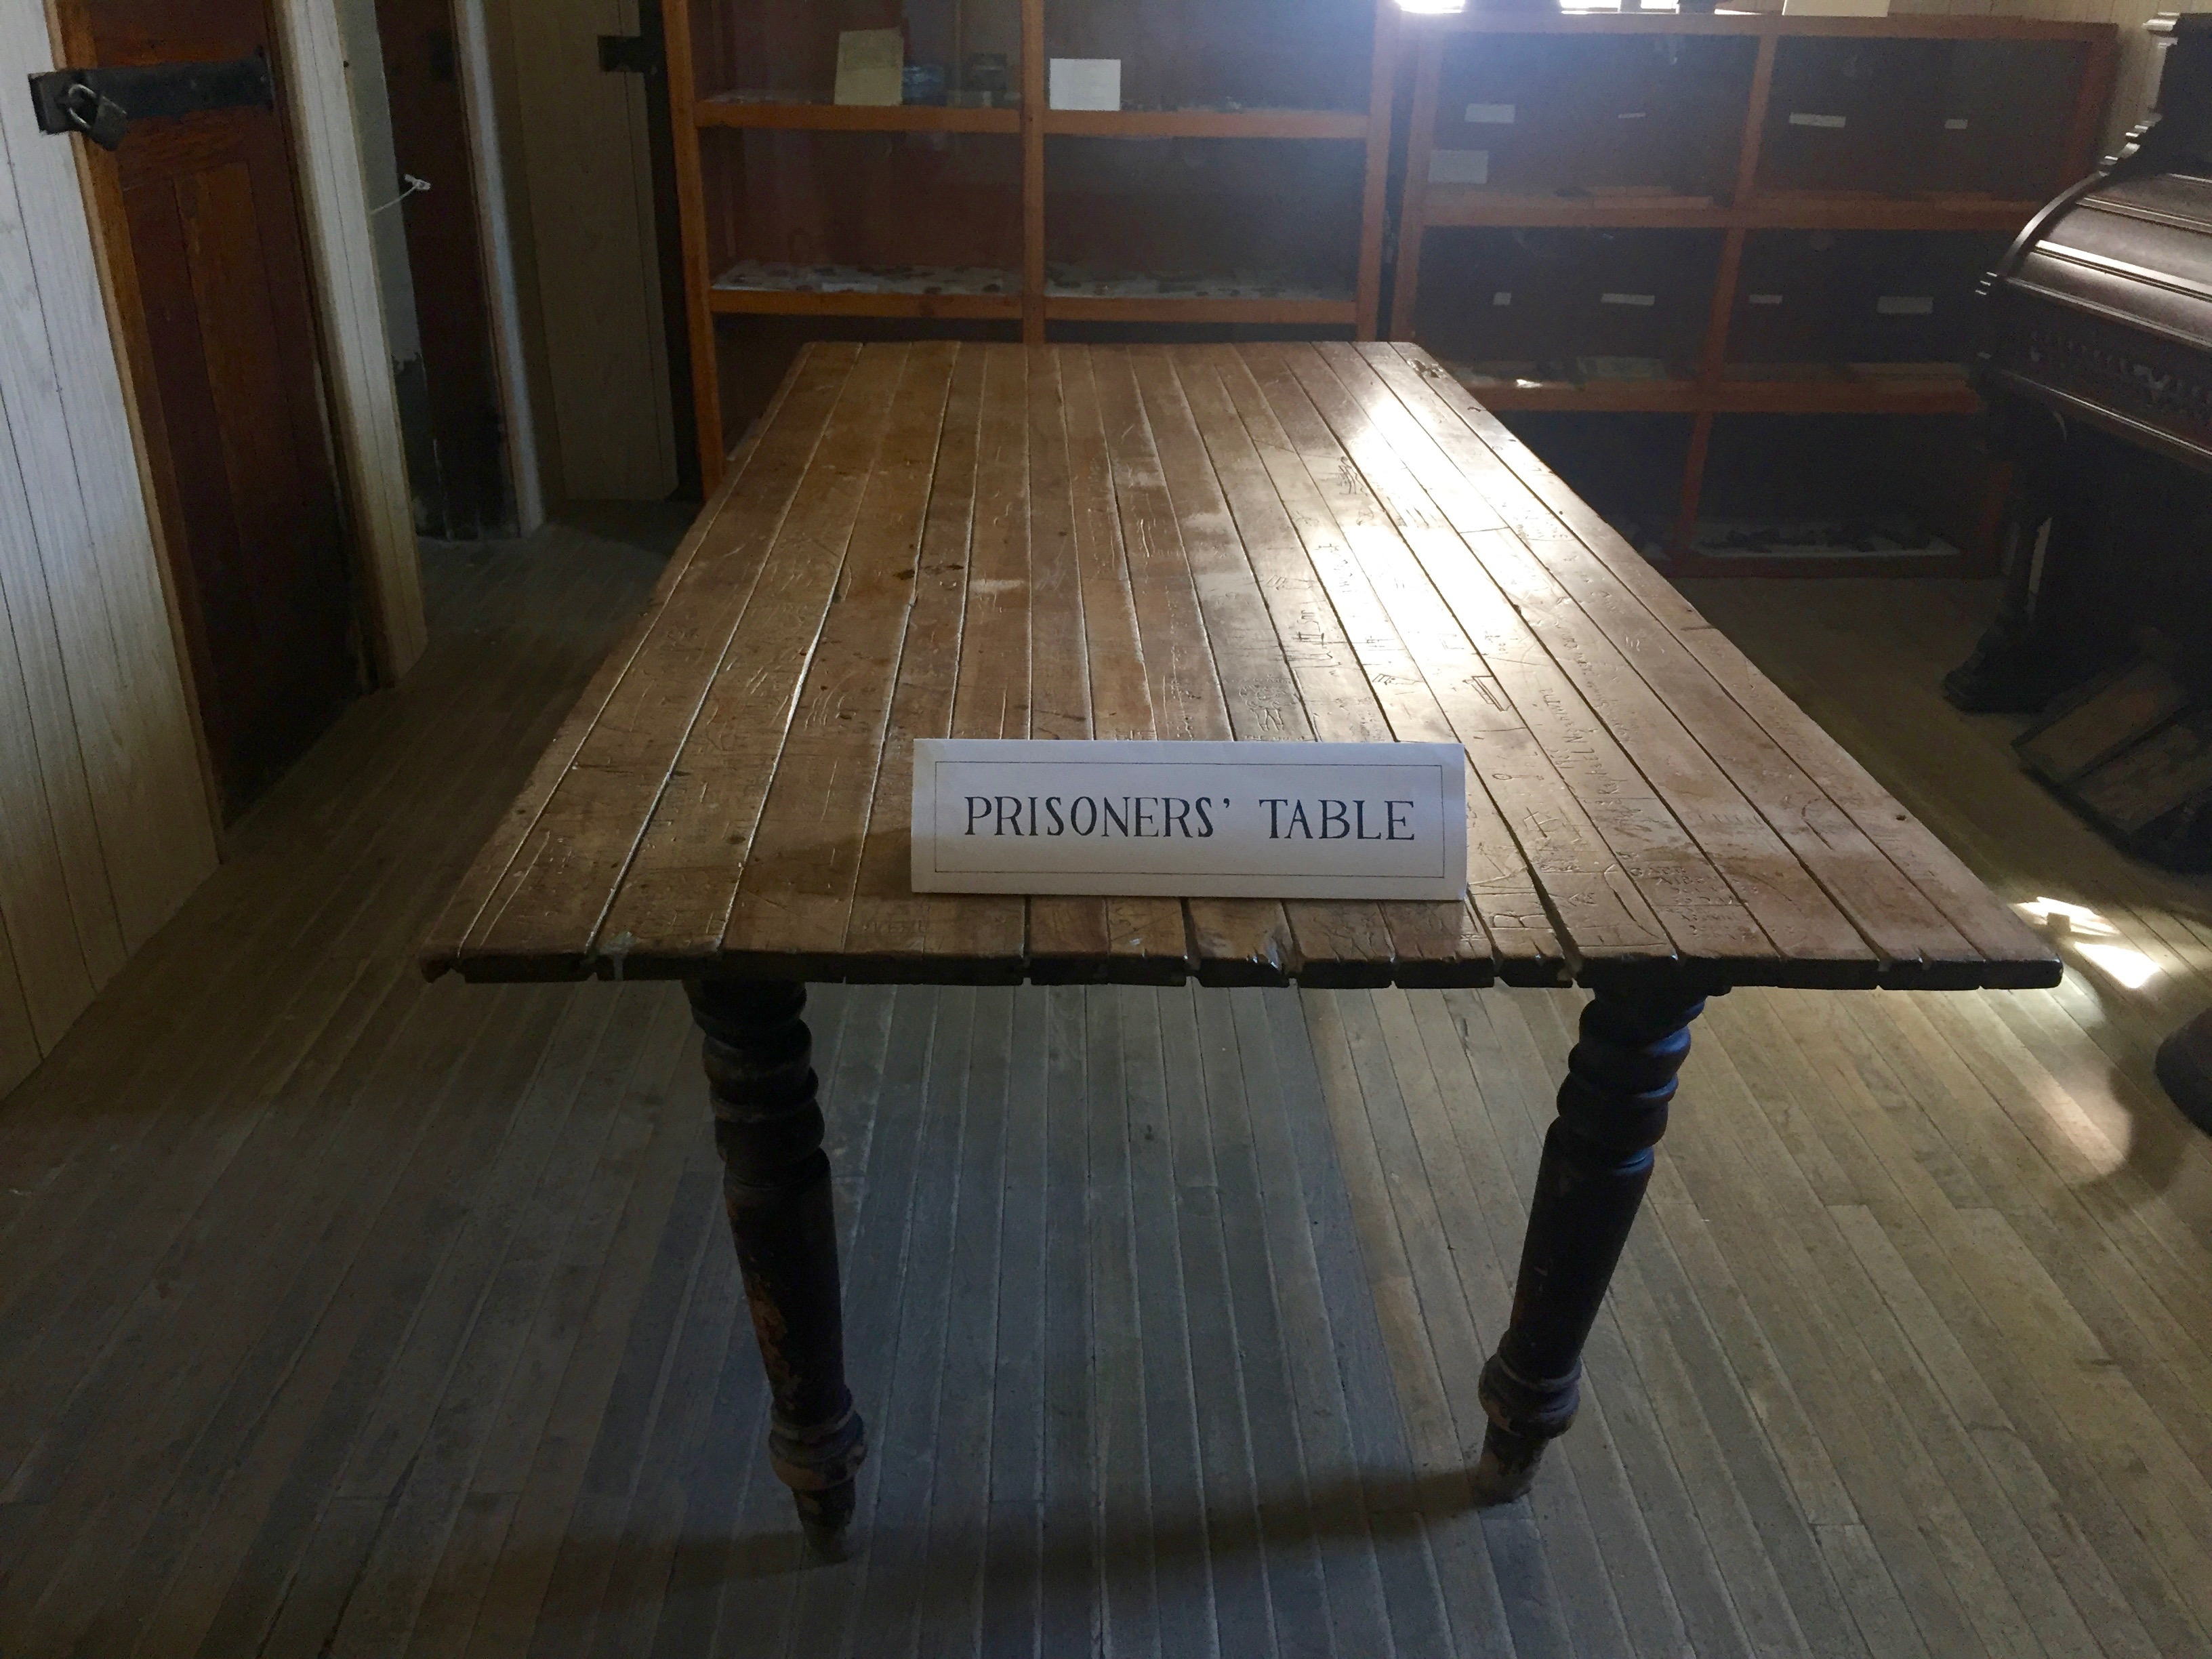 Prisoners' Table